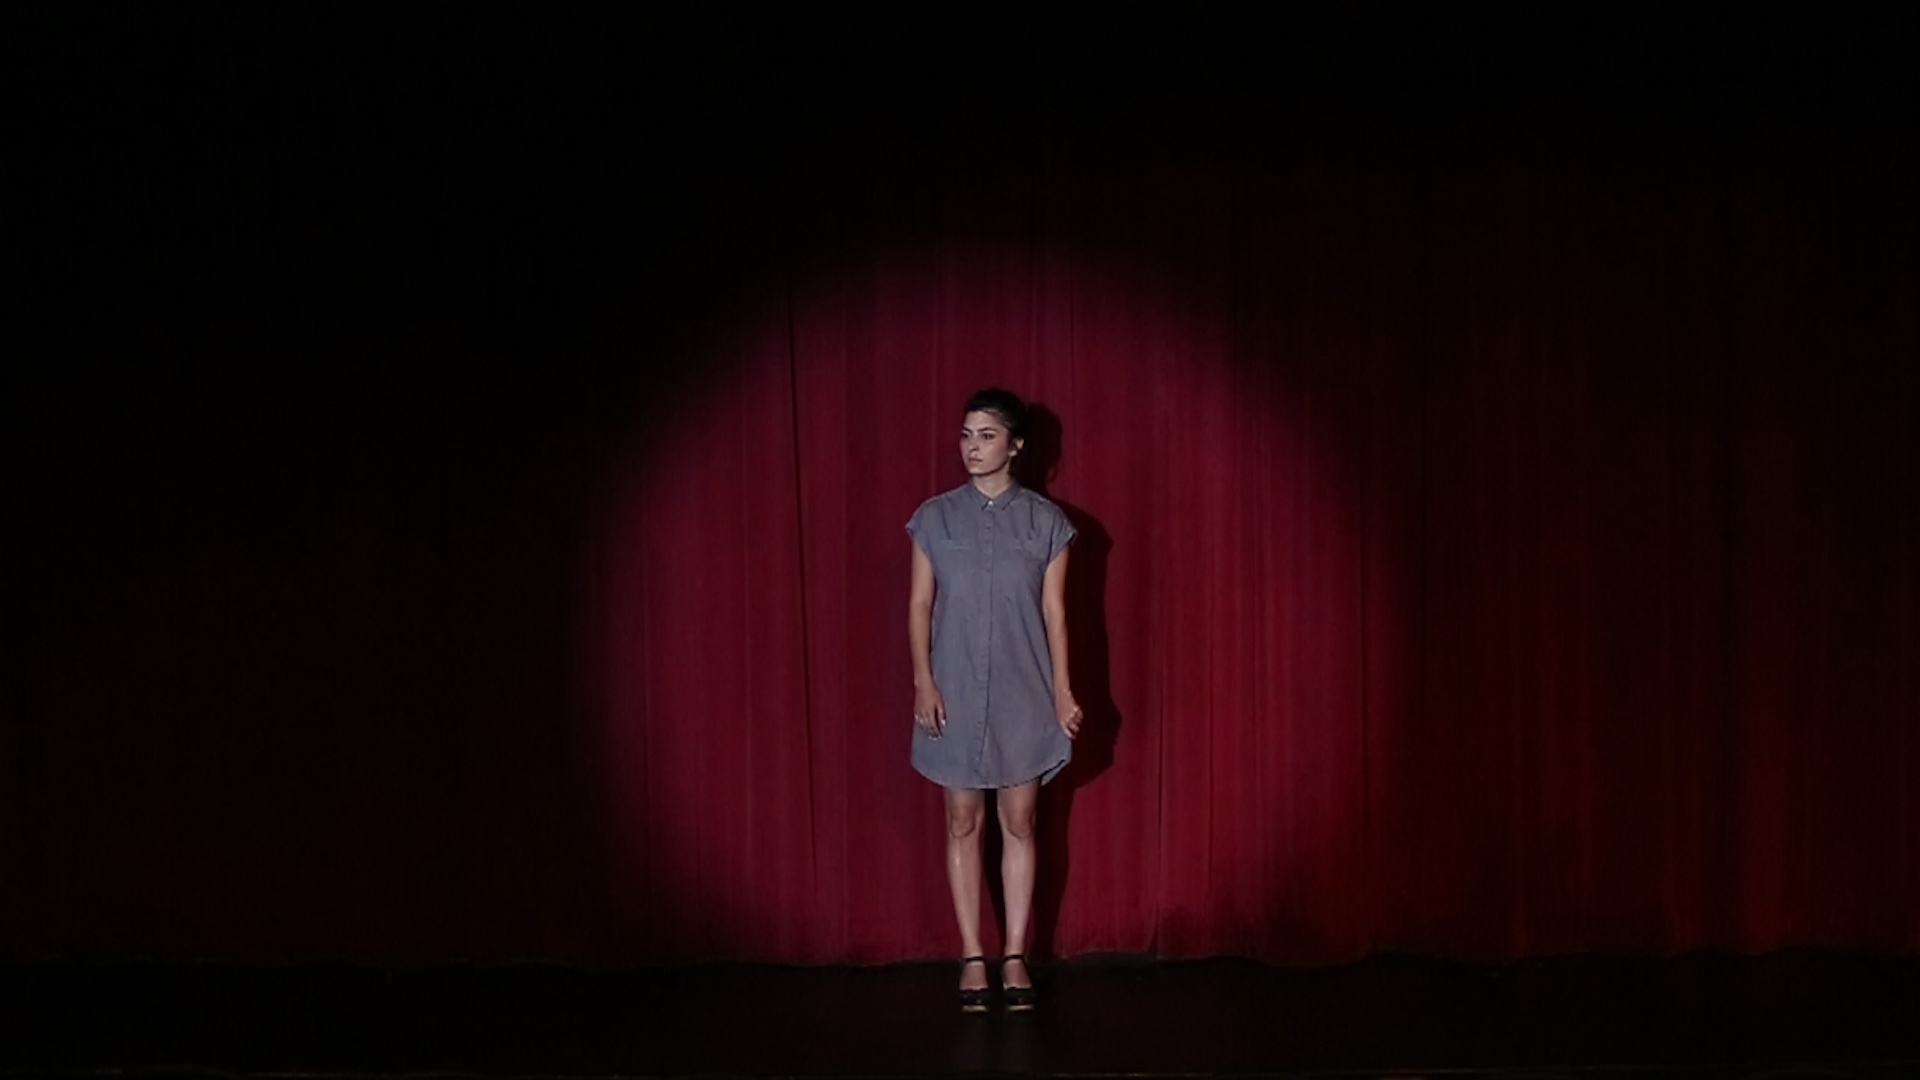 Video still by Houston, TX based Emily Peacock, courtesy of the artist. A person stands on a stage with a red curtain behind them with a spotlight on them.